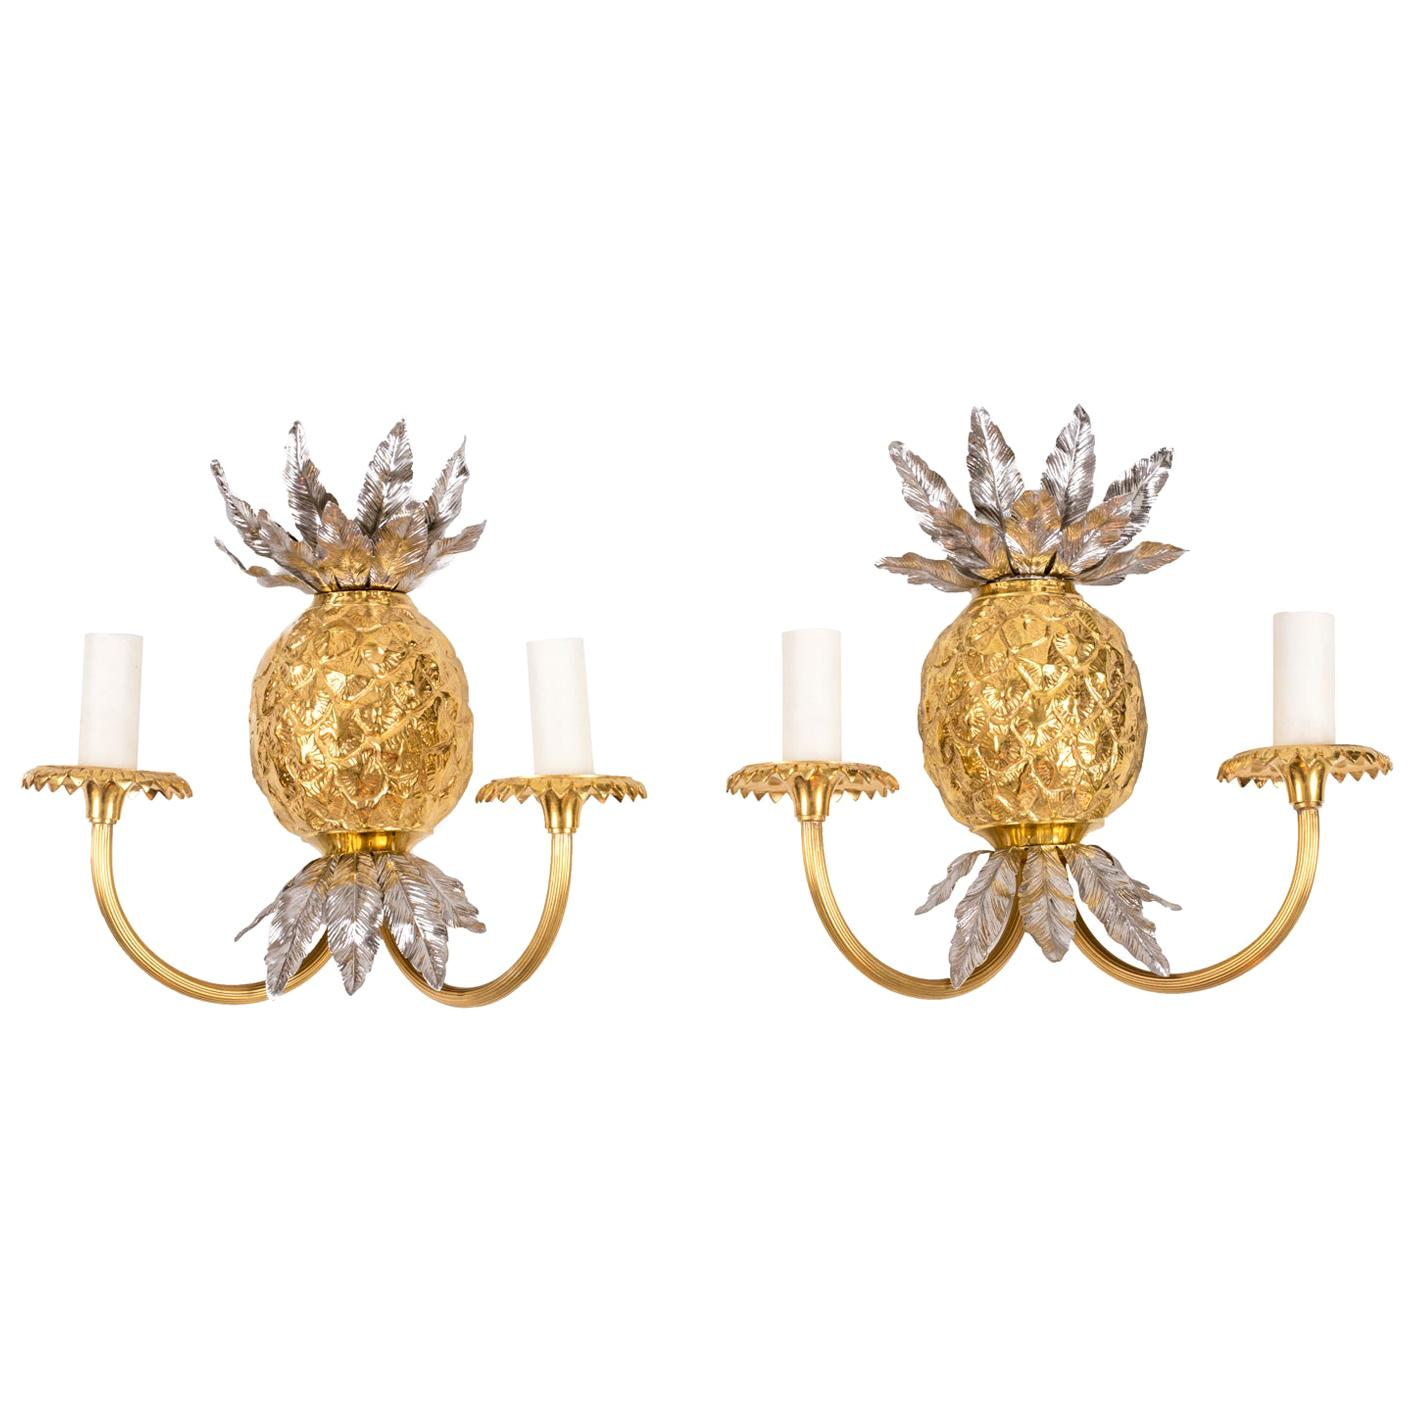 Maison Charles, Pair of Pineapple Wall Sconces in Gilt Bronze, 1970s